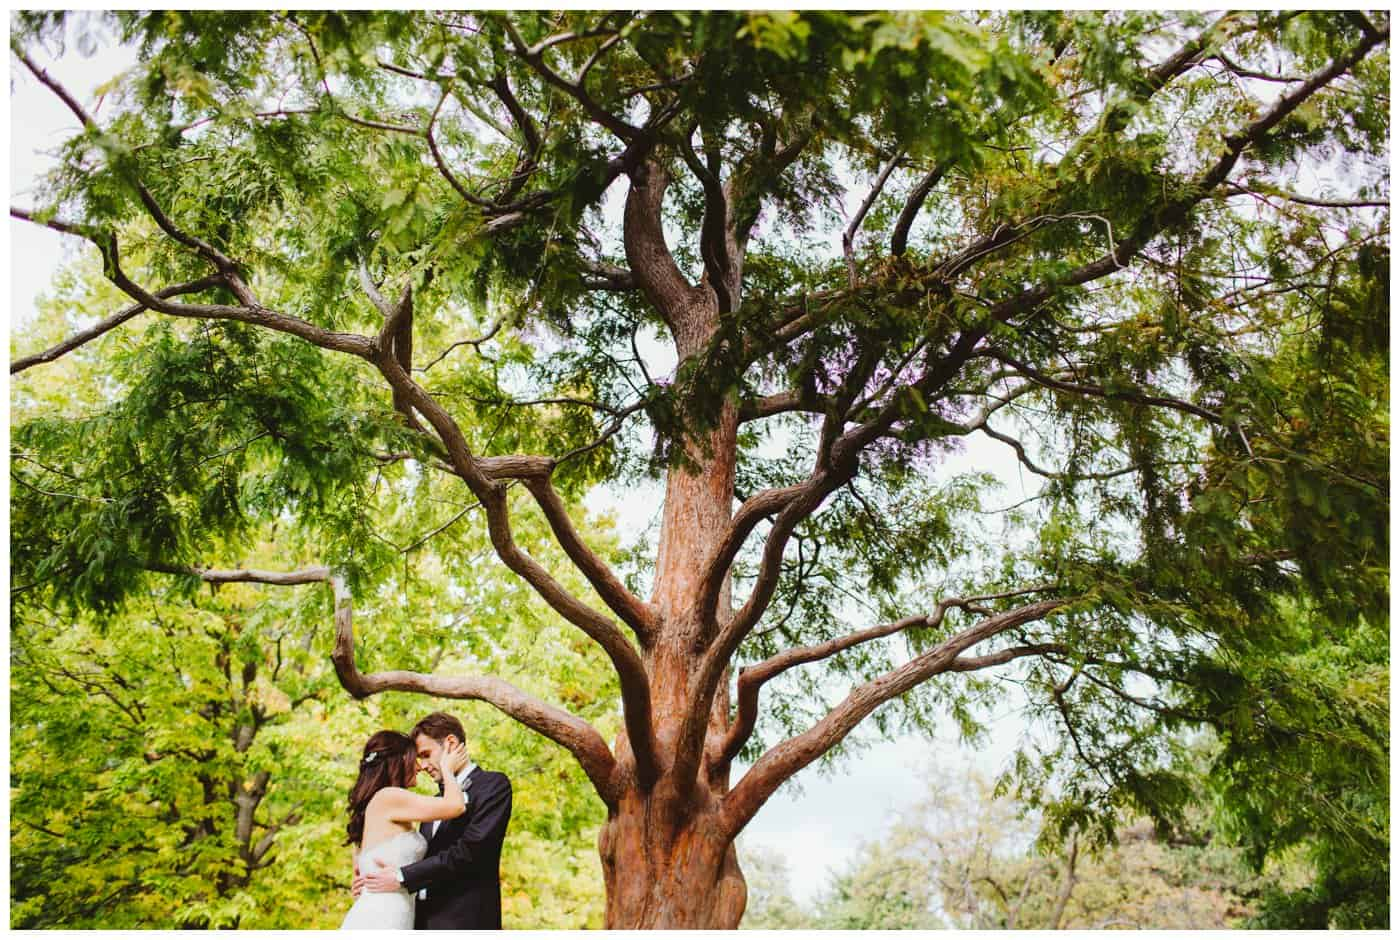 Amazing wedding photo of a couple under a tree at The Windsor Montreal